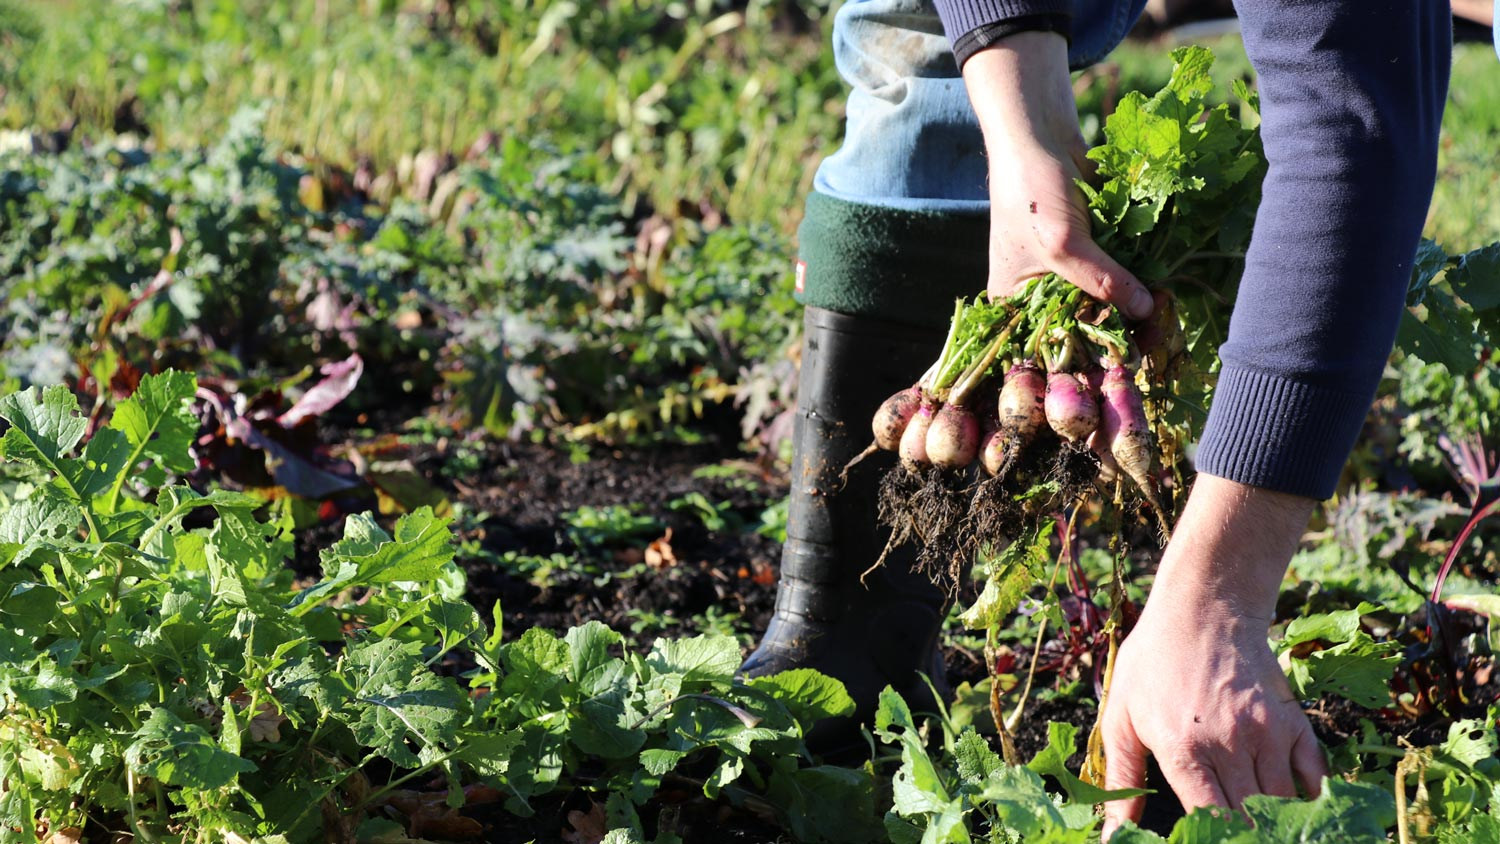 Radish-Indie-Ecology-Food-Waste-Farming-Farmer-Fresh-Sustainable.jpg